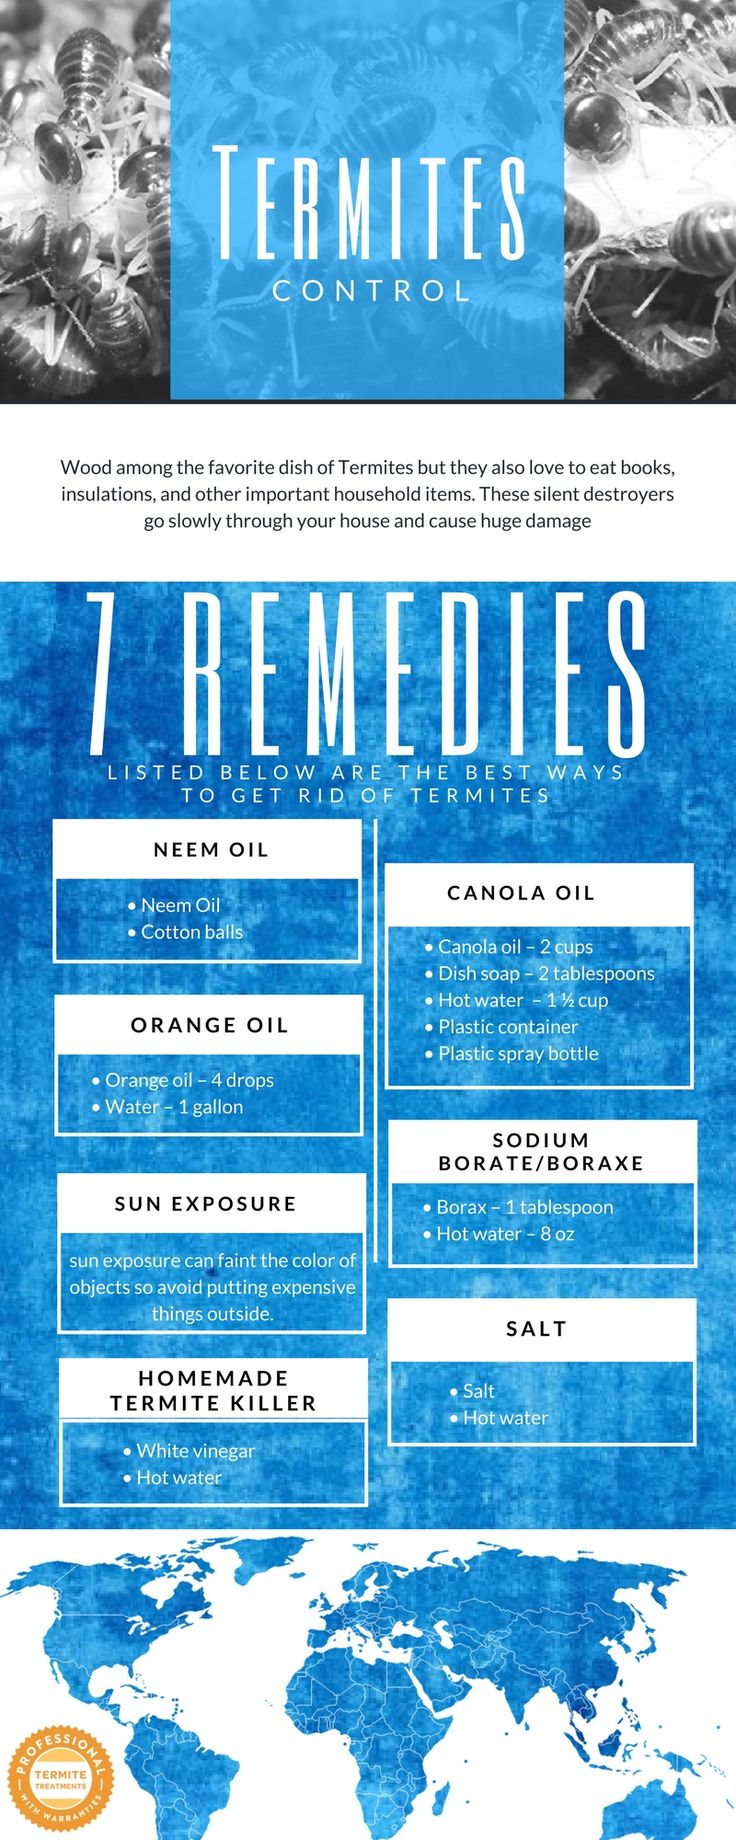 119 best Home Remedies images on Pinterest | Natural home remedies ...